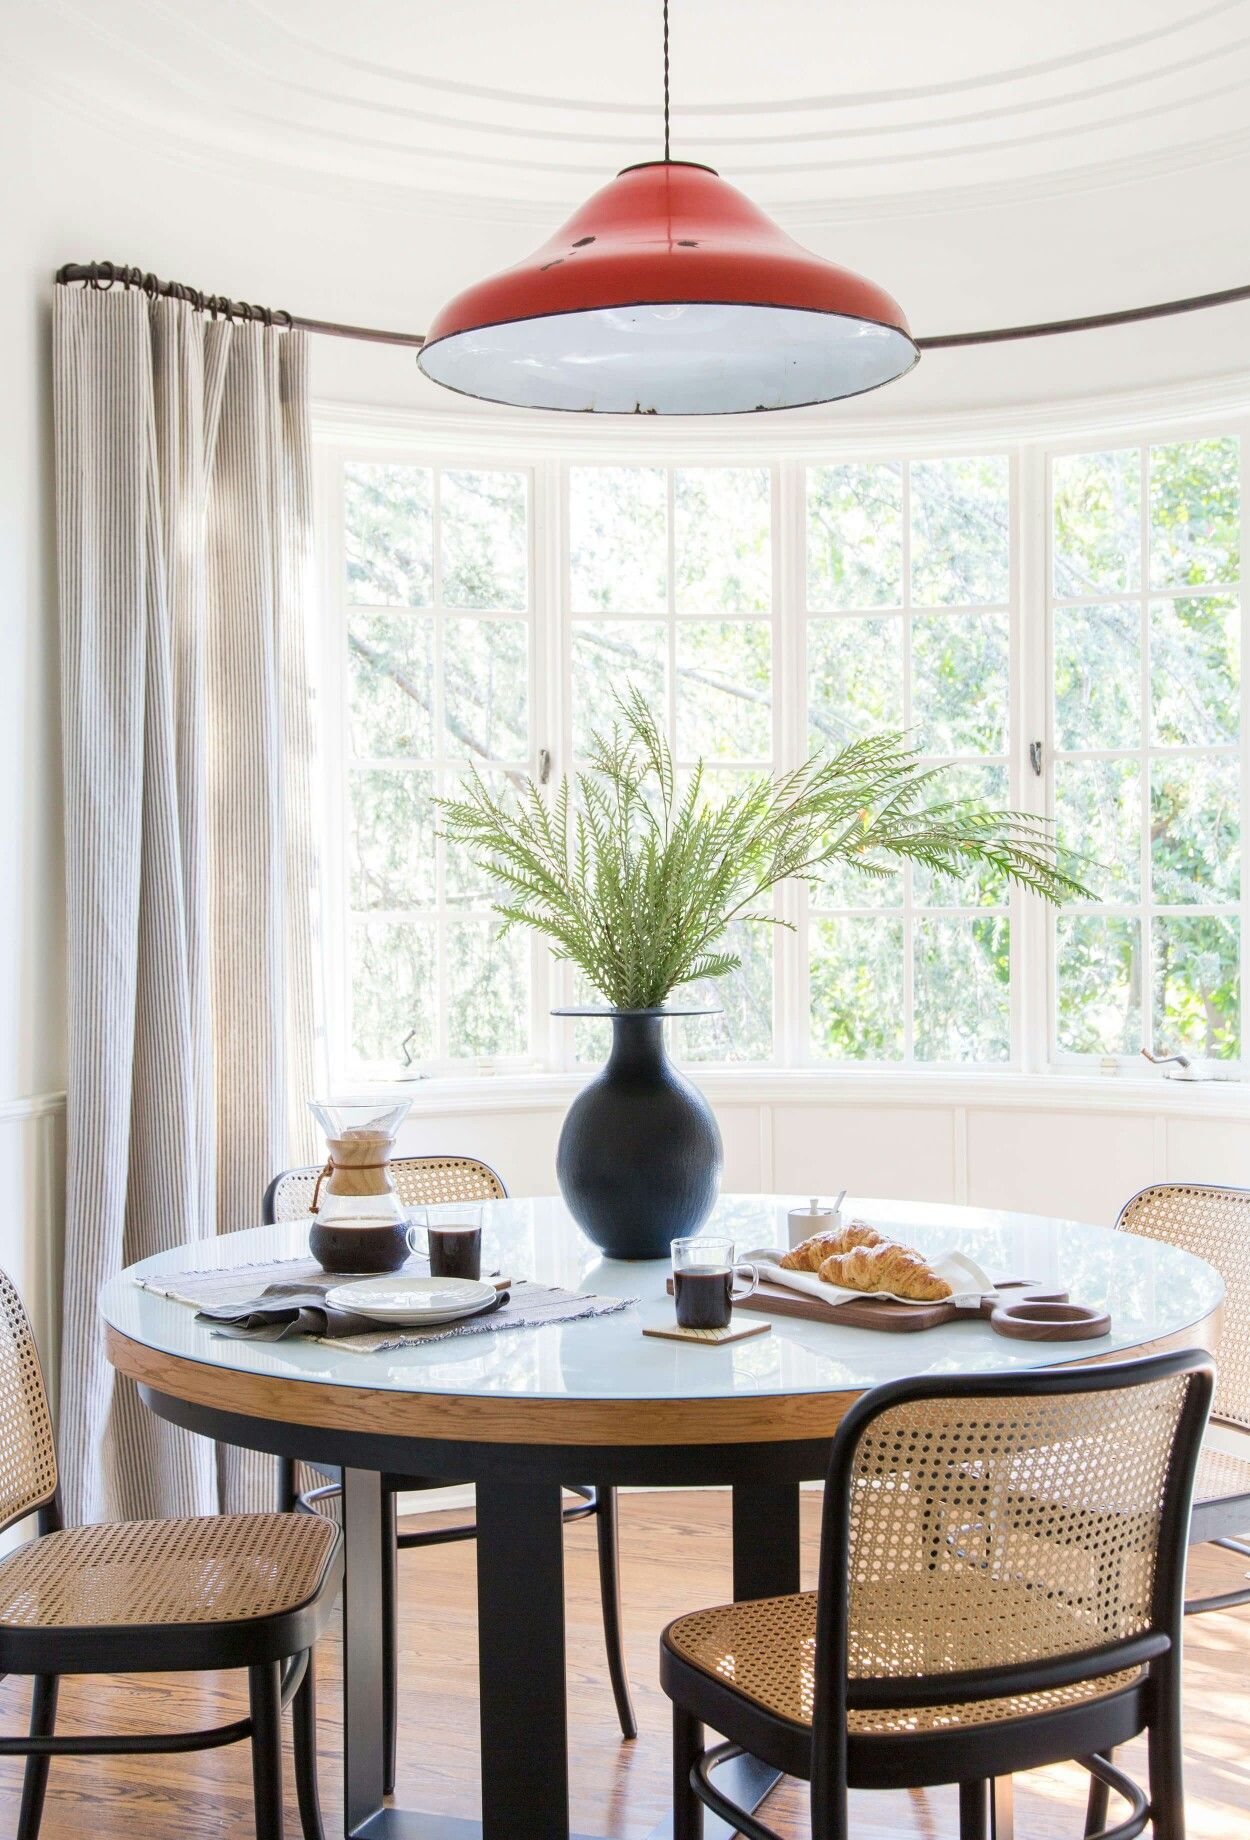 In The Kitchen Nook A Custom Table Is Surrounded By Josef Hoffmann Chairs Vintage Light Hangs Above